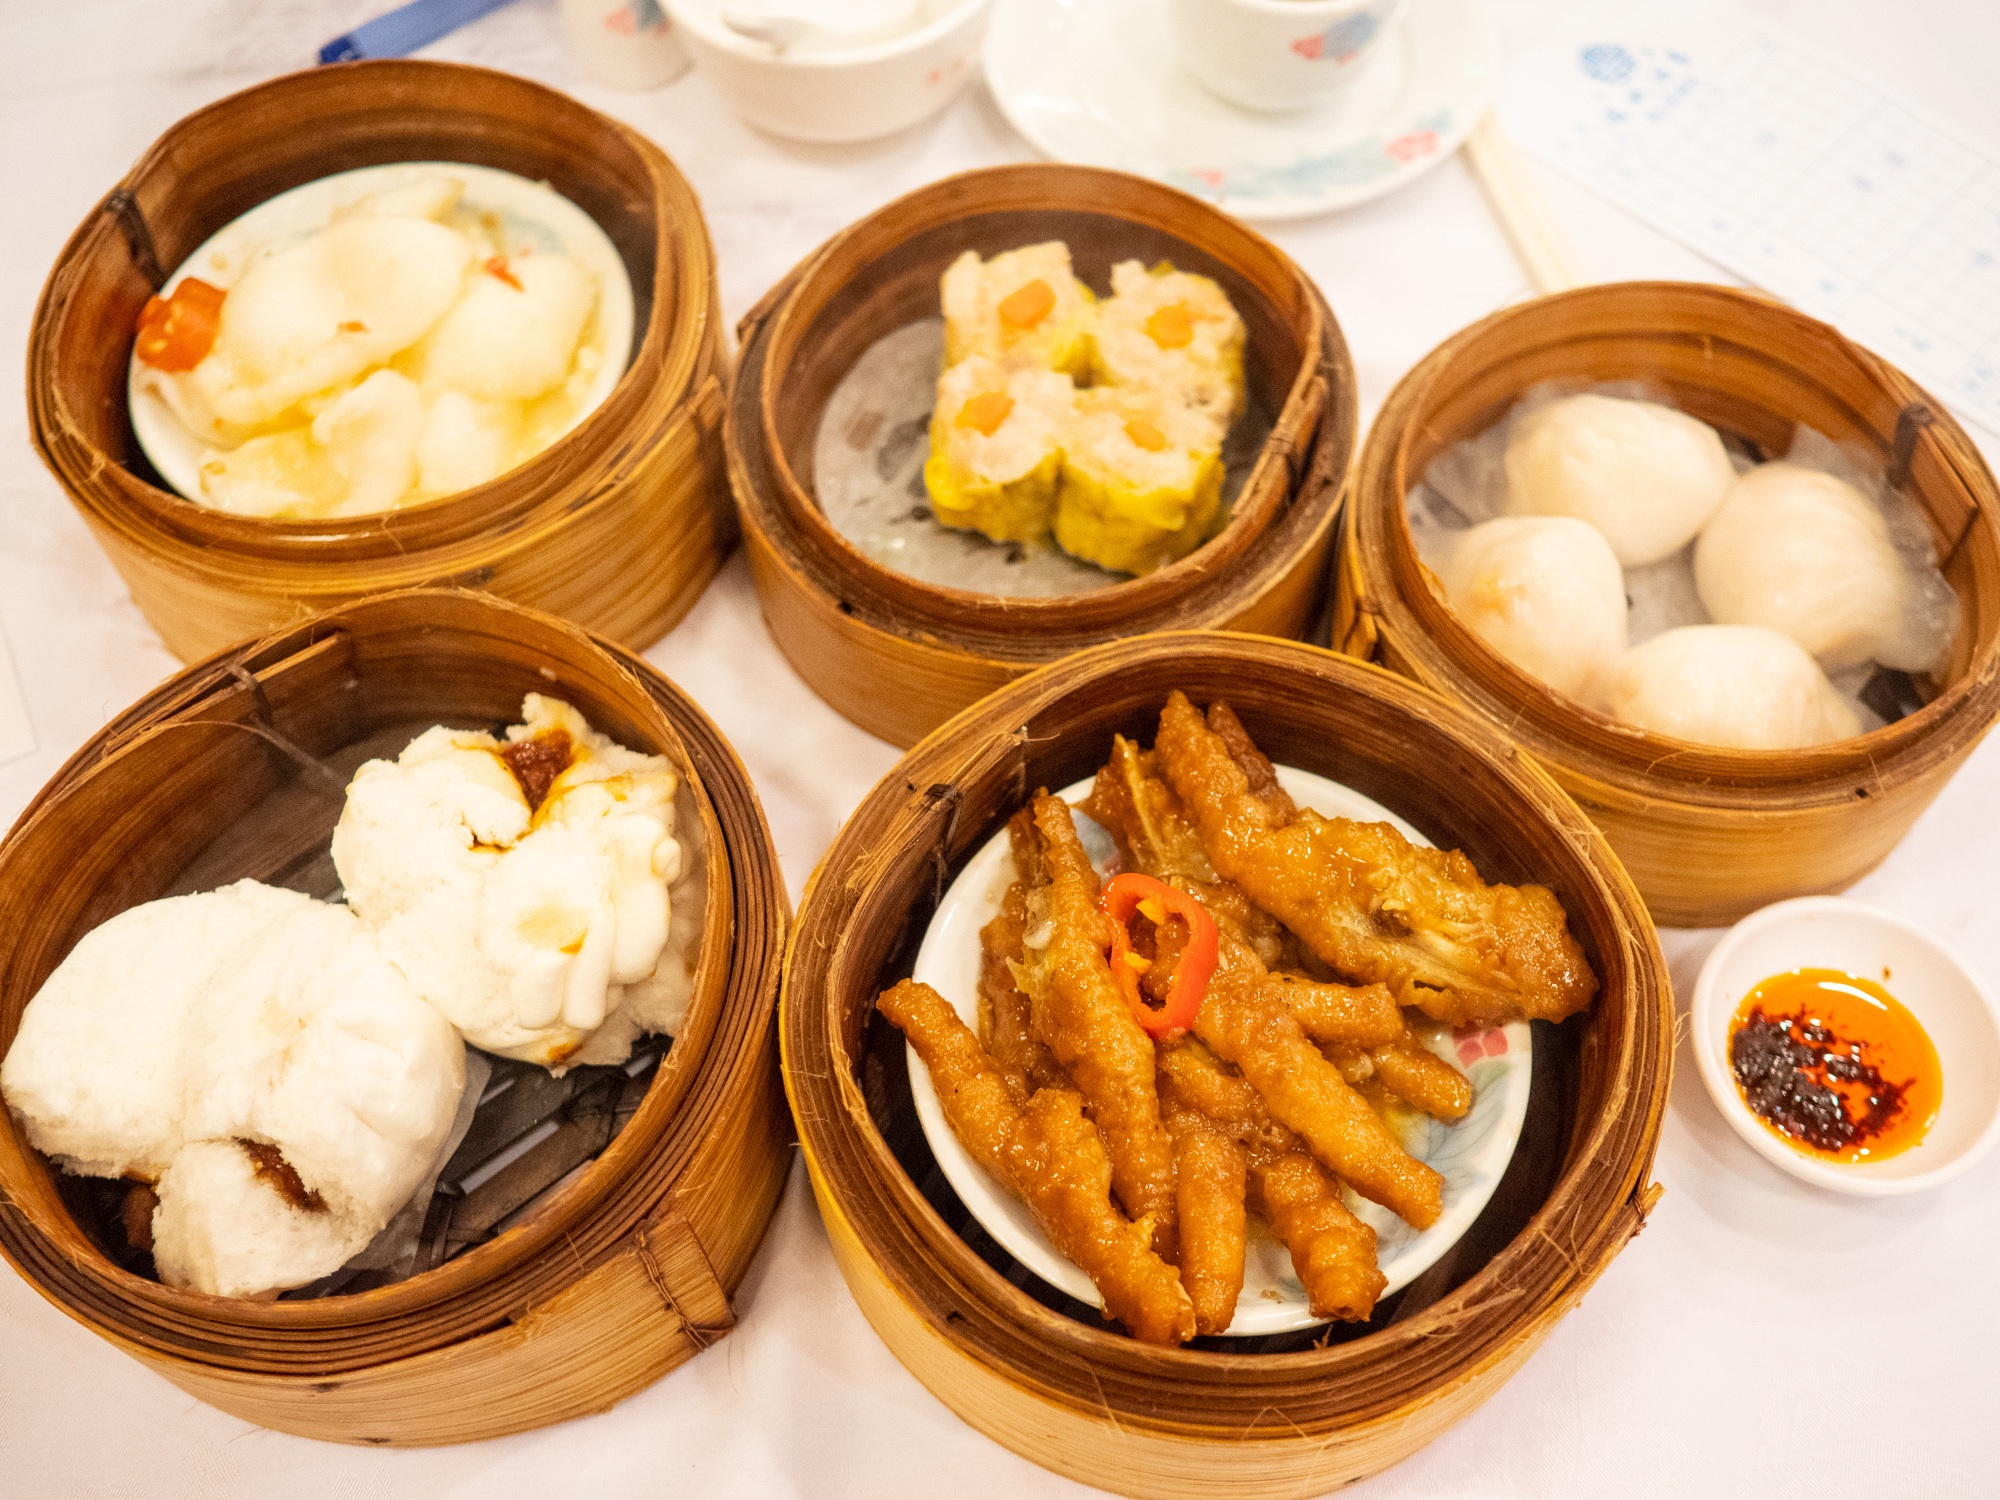 The best dim sum in hong kong is all found in this guide!